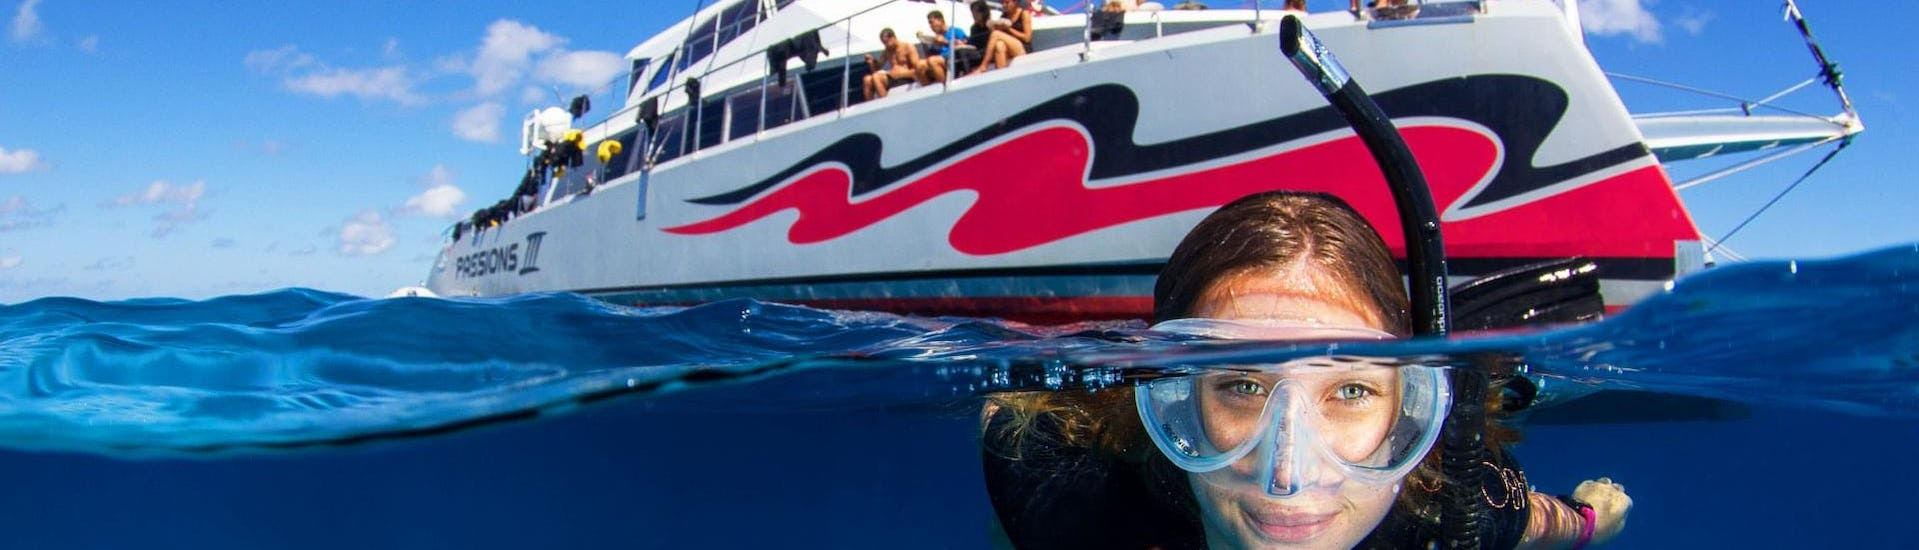 A young woman is exploring the marine wonderland during the Boat Tour with Snorkeling on the Great Barrier Reef organised by Passions of Paradise.